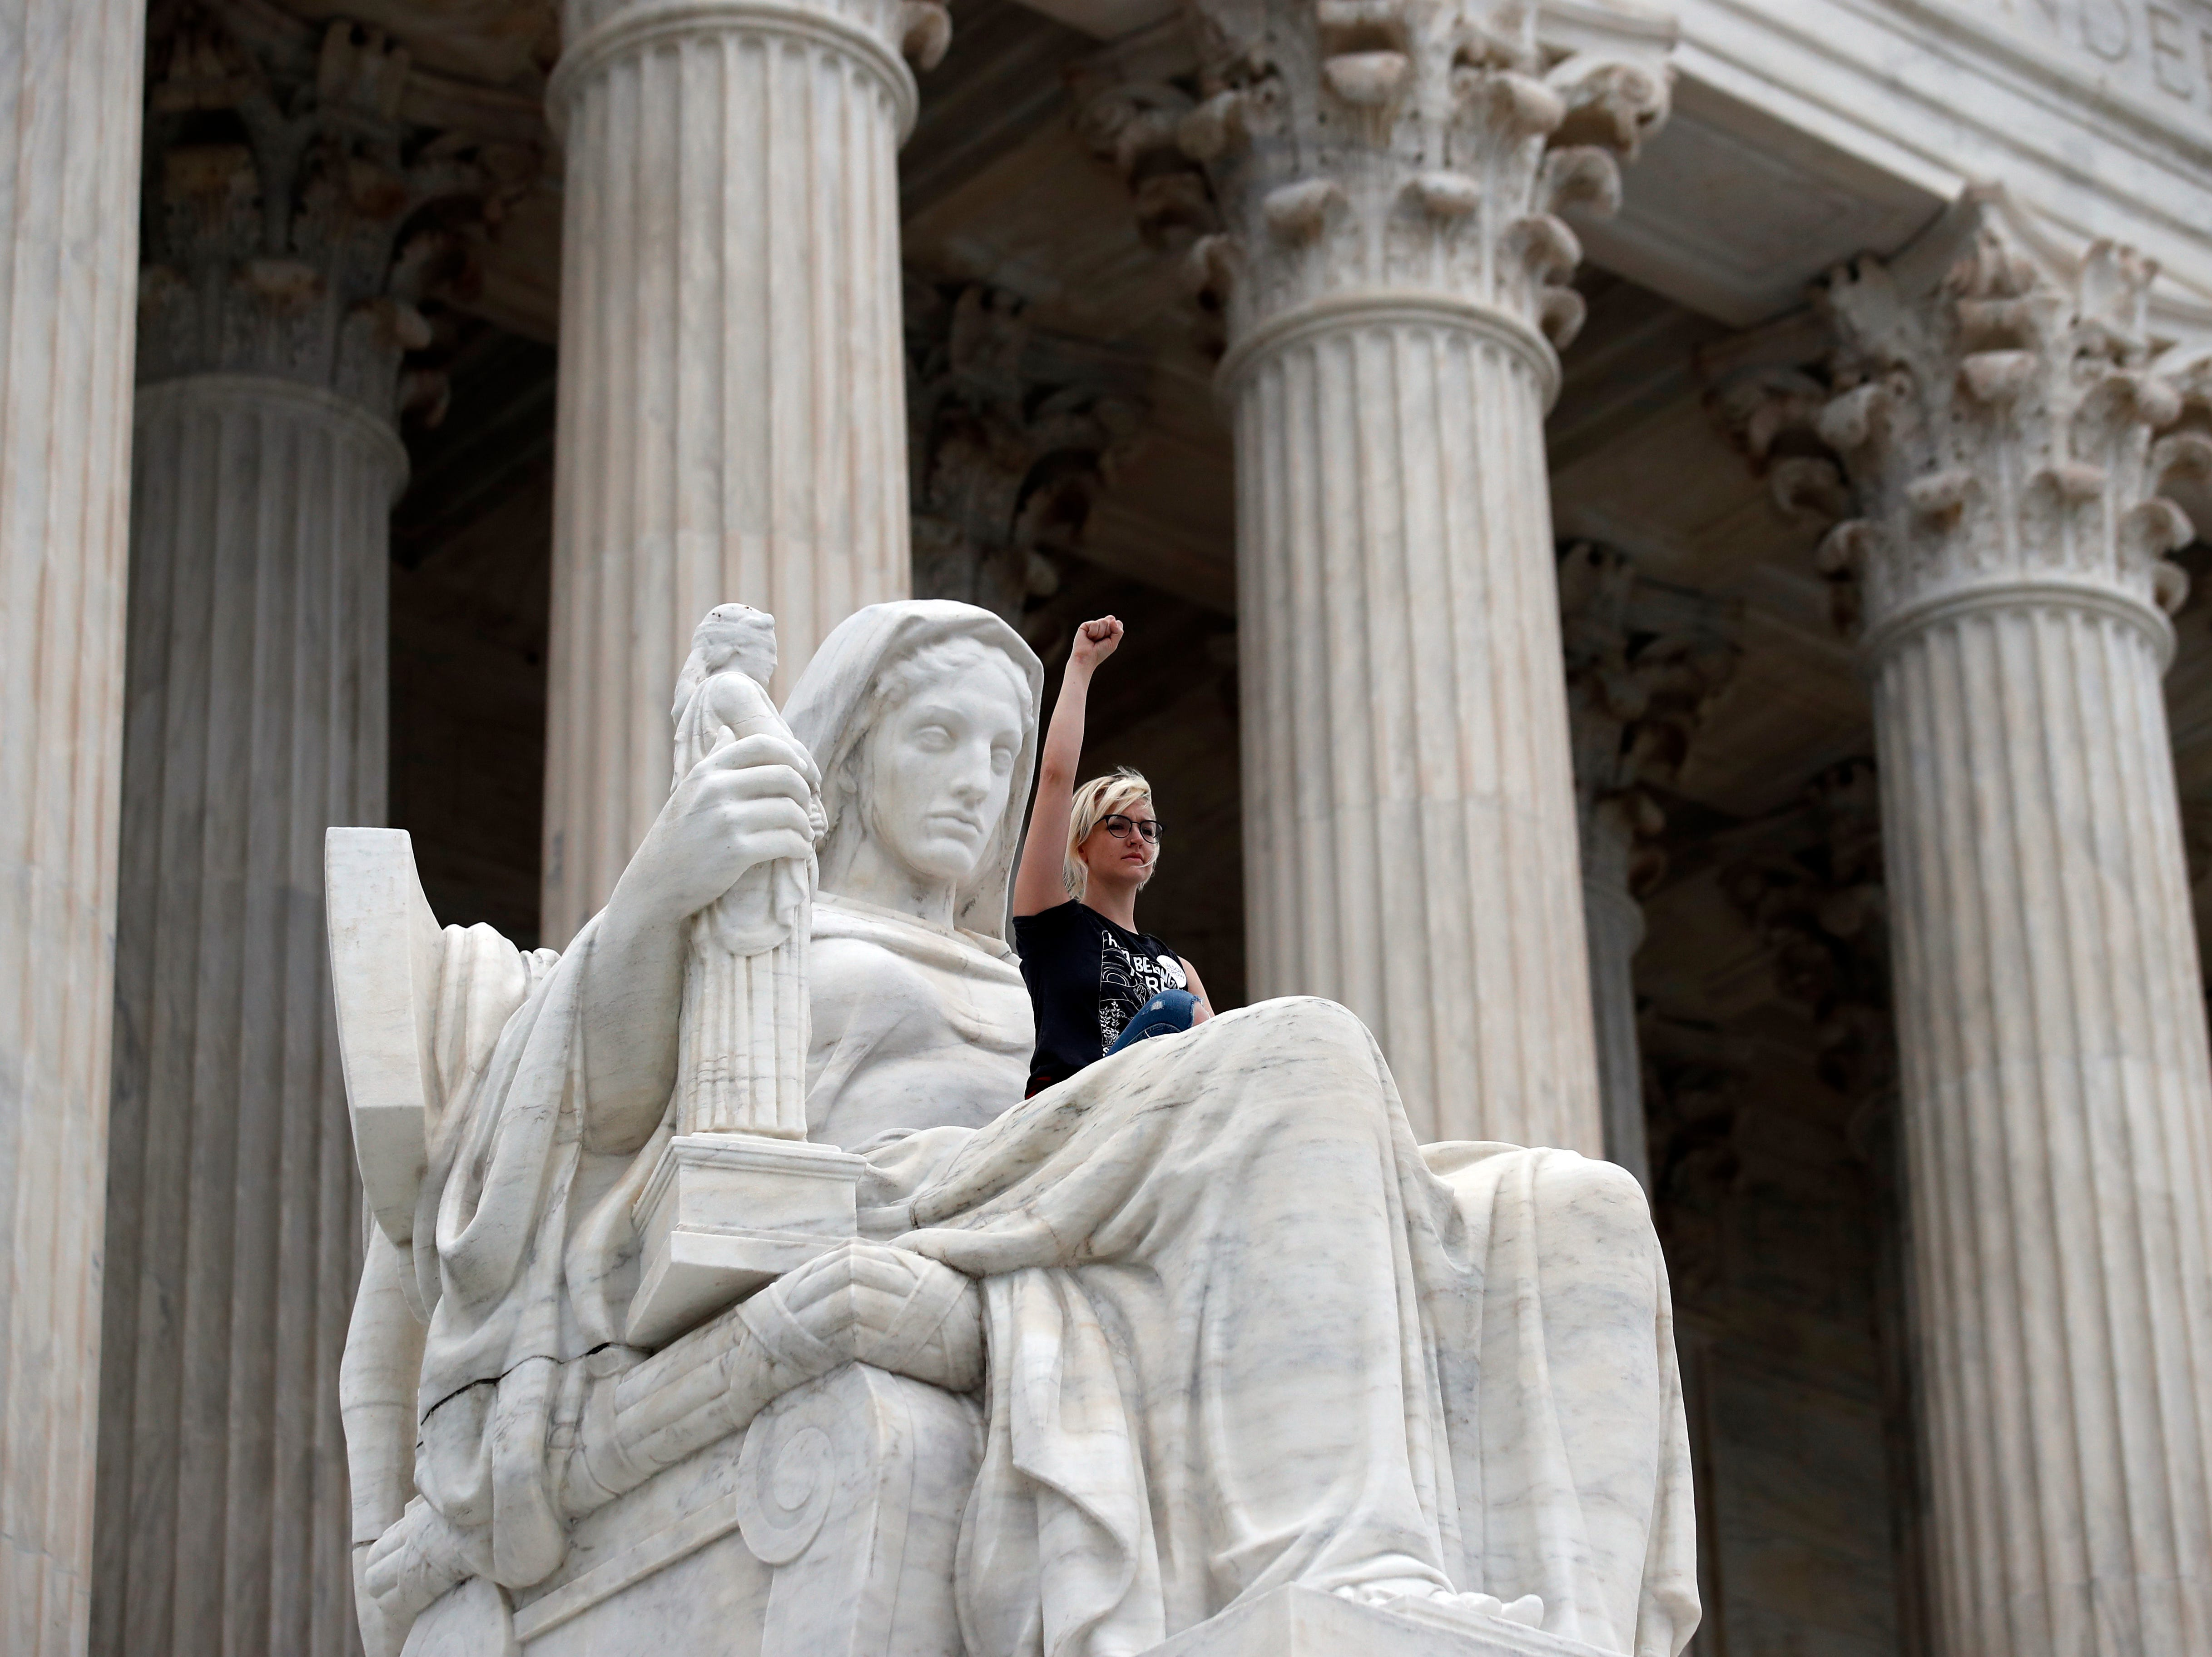 Jessica Campbell-Swanson, from Denver, sits in the lap of the Contemplation of Justice statue as activists protest on the steps of the Supreme Court after the confirmation vote of Supreme Court nominee Brett Kavanaugh, on Capitol Hill, Oct. 6, 2018 in Washington.